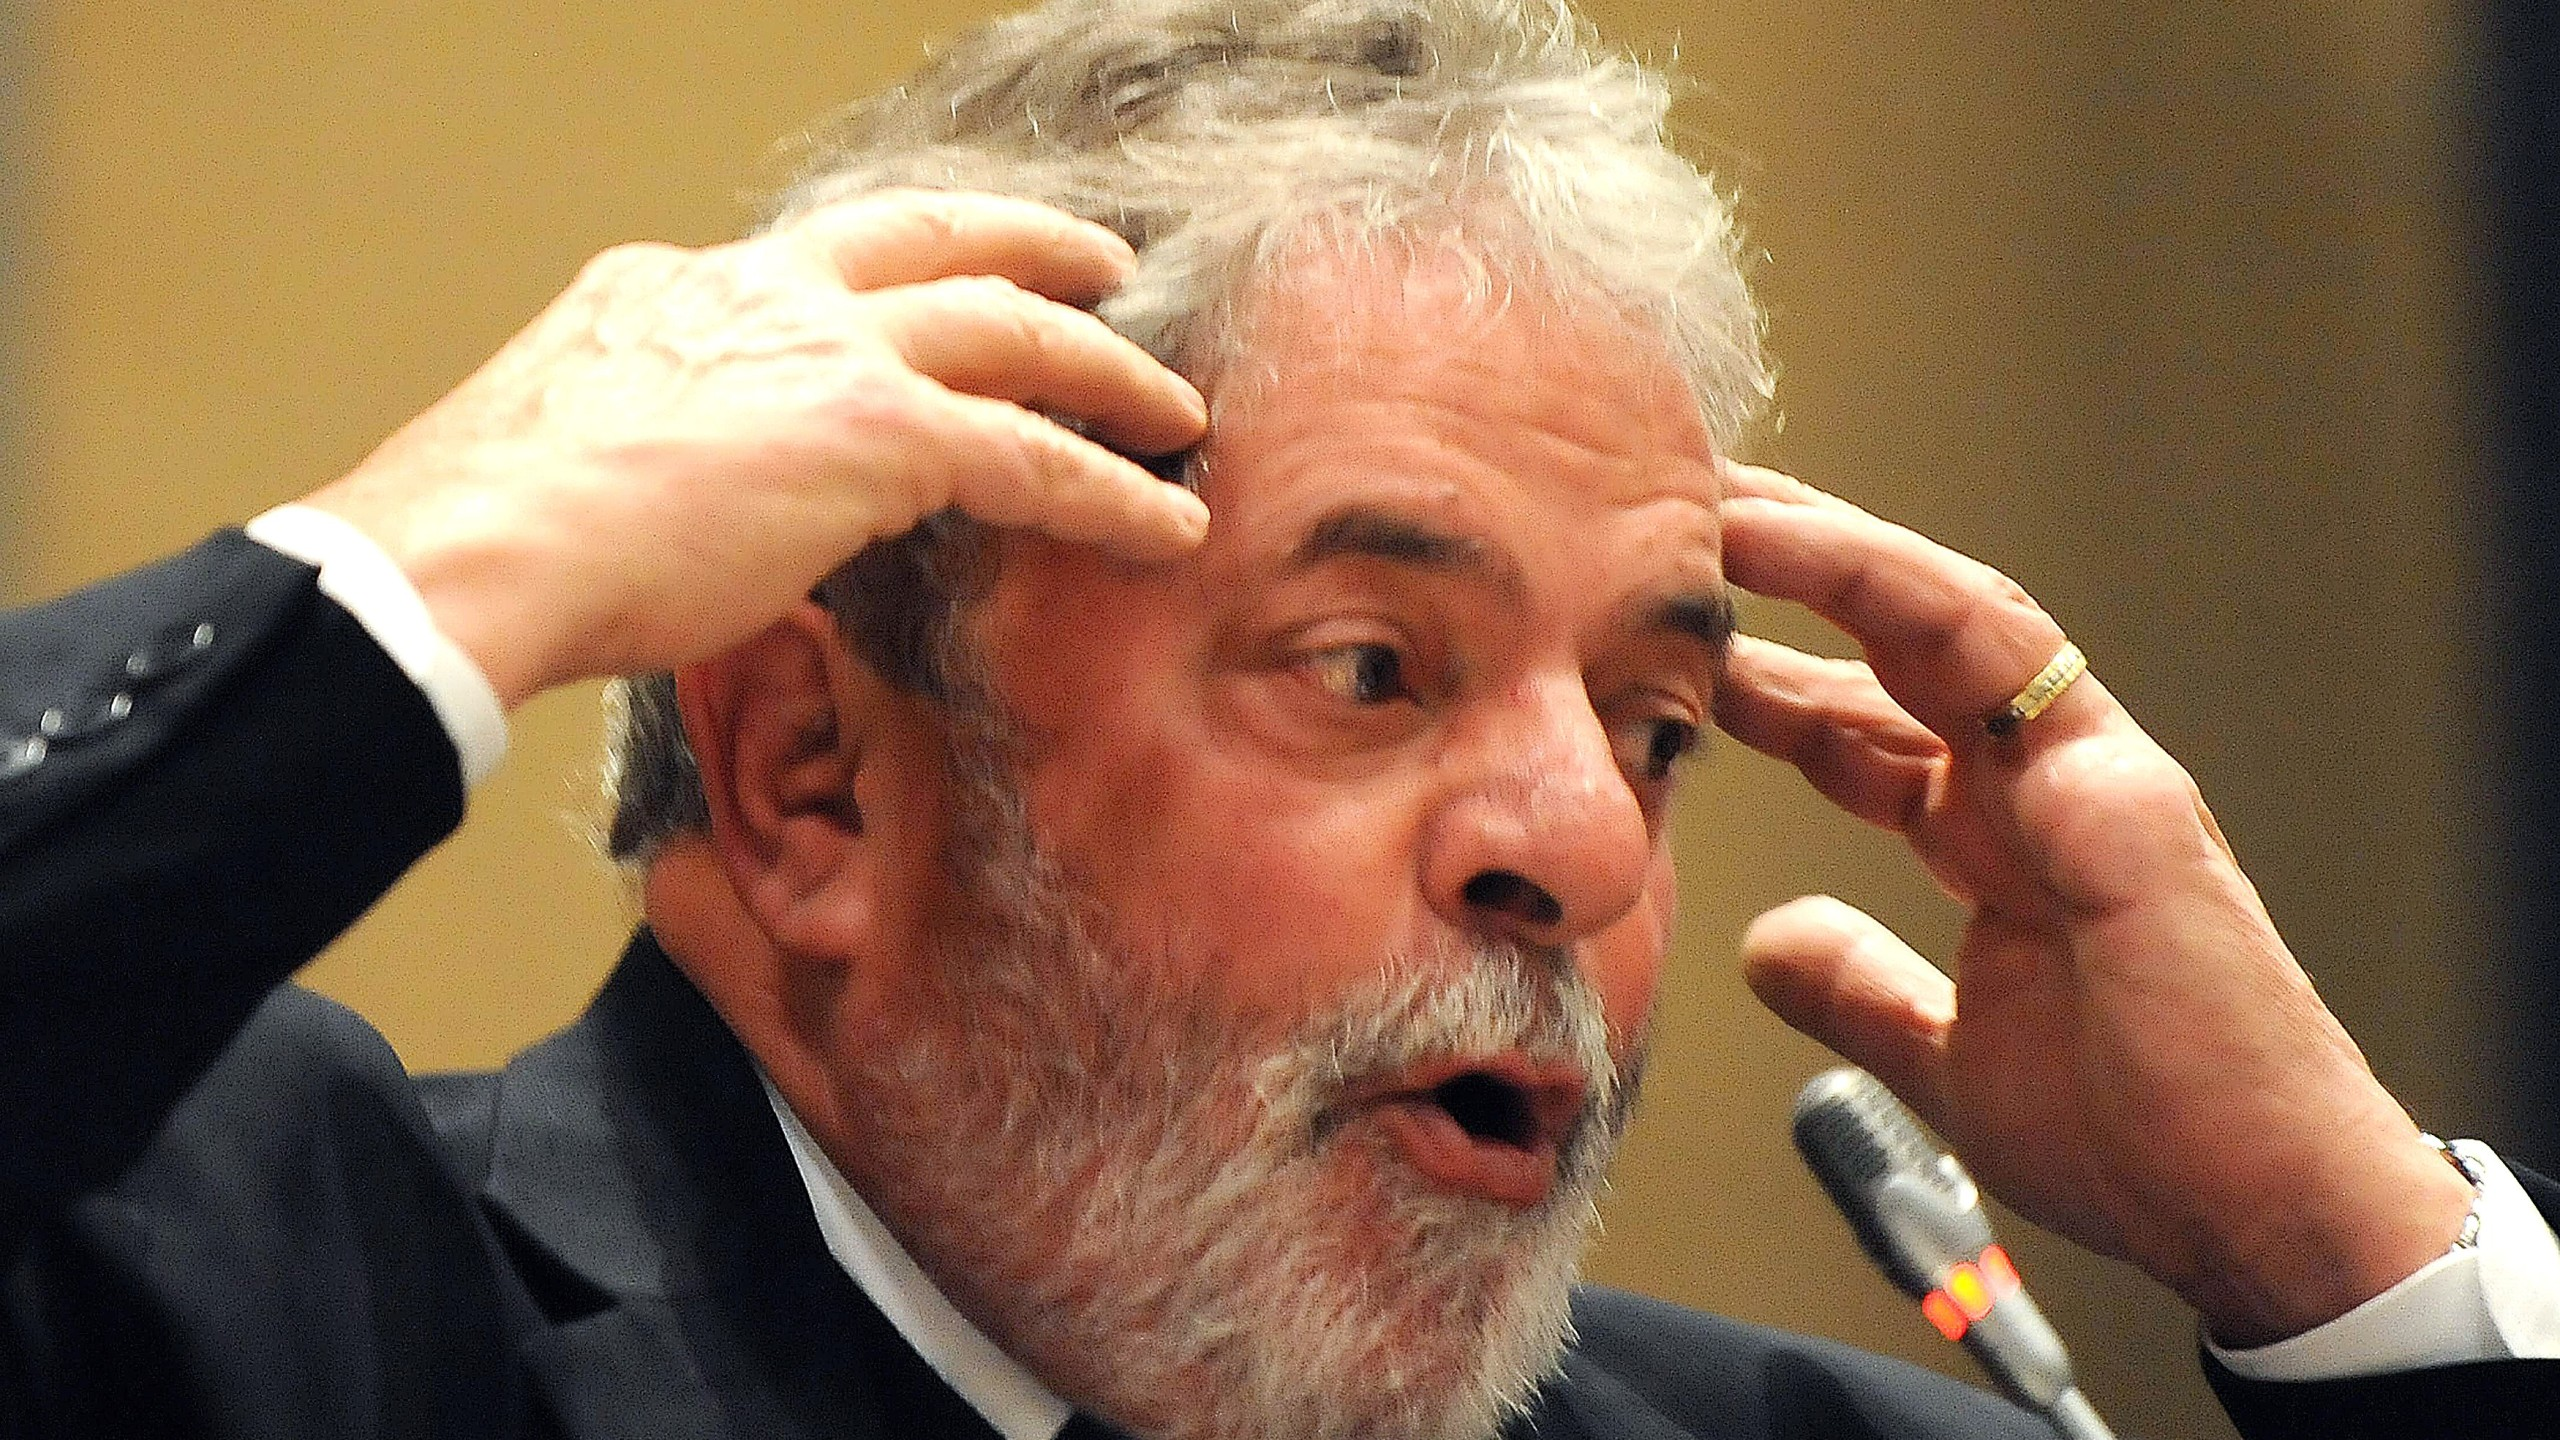 Brazil's President Luiz Inacio Lula da Silva delivers a speech during the closing ceremony of the South Africa-Brazil Business Forum in Johannesburg on July 9, 2010. (Credit: Antonio Scorza/AFP/Getty Images)